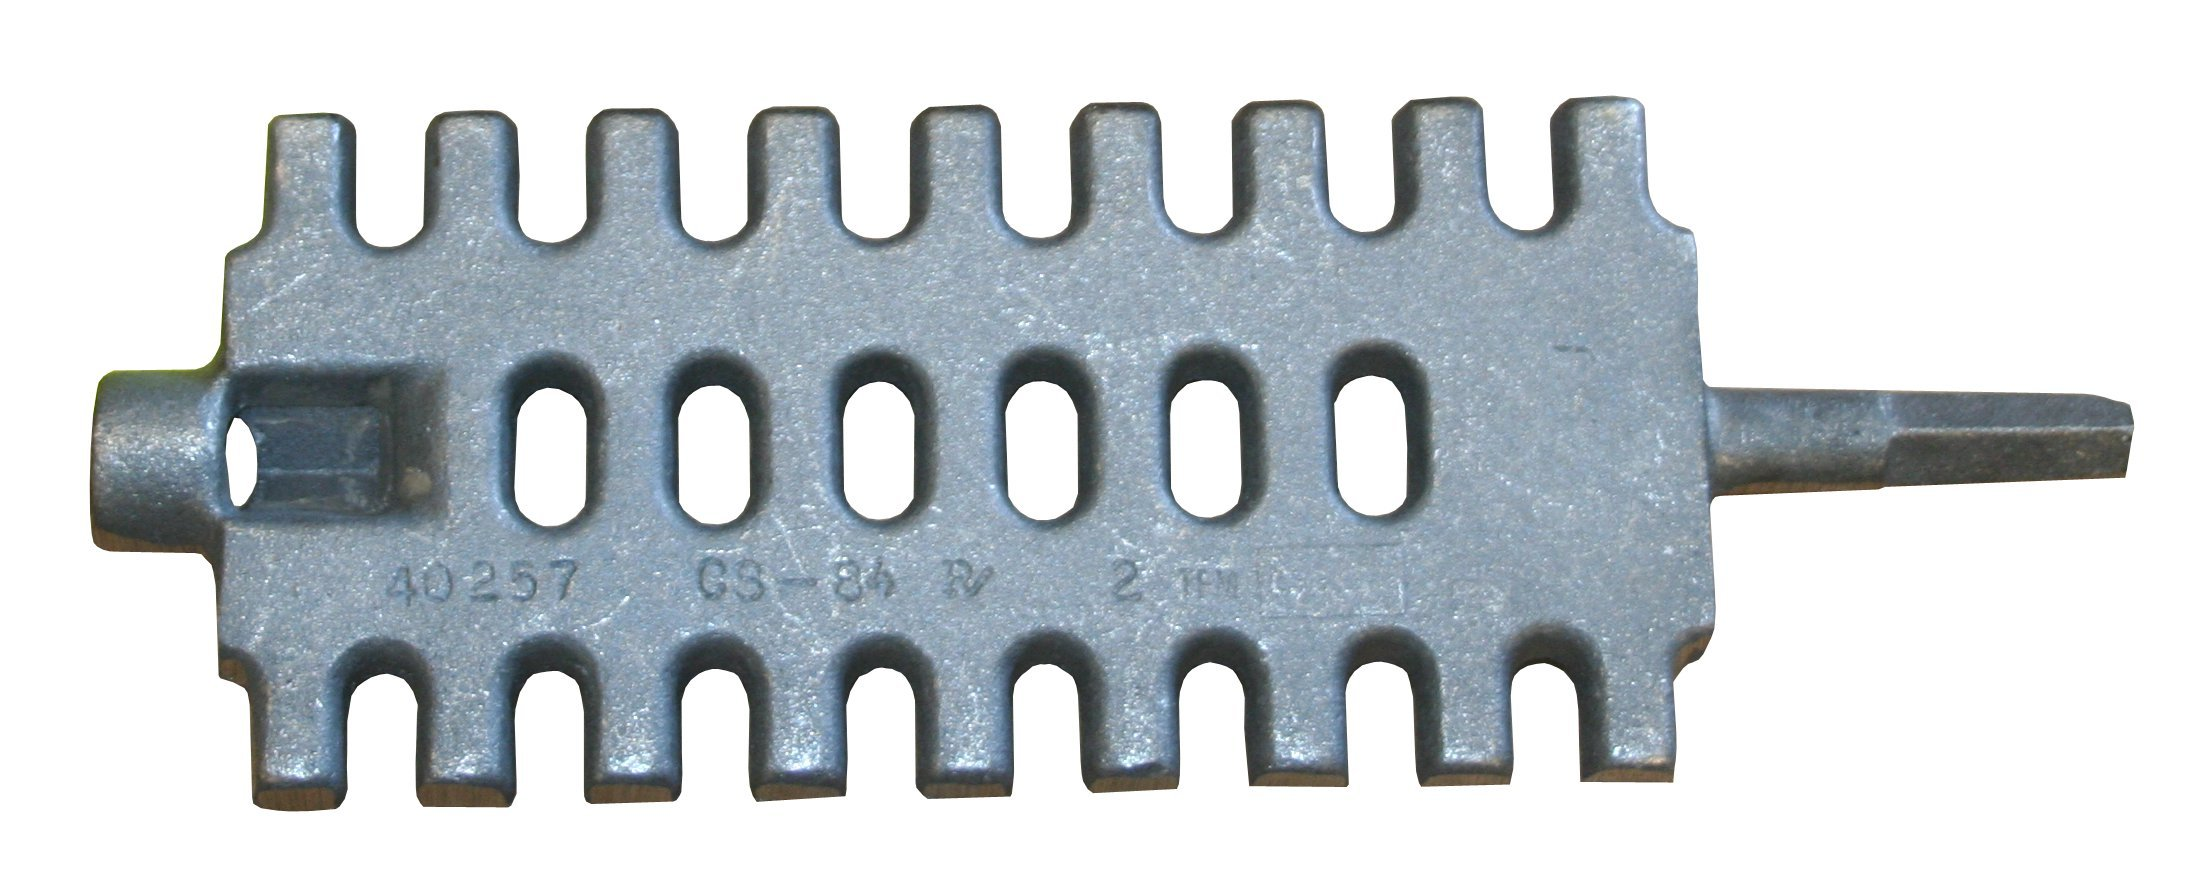 US Stove 40257 Shaker Grate by US Stove Company